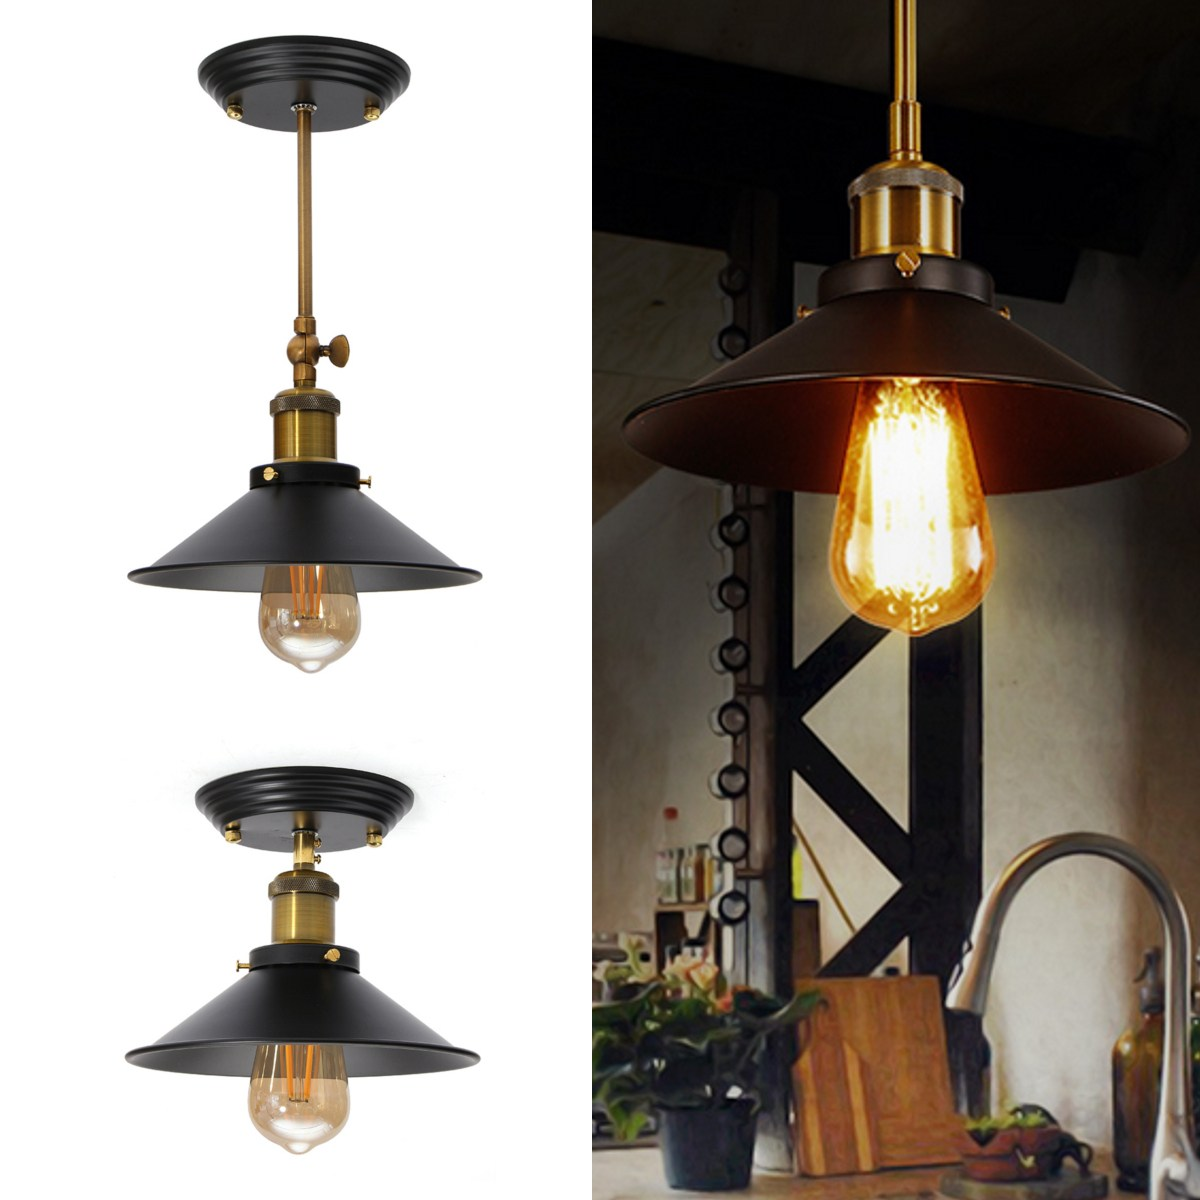 Vintage Pendant Lights Loft Pendant Lamp Retro Hanging